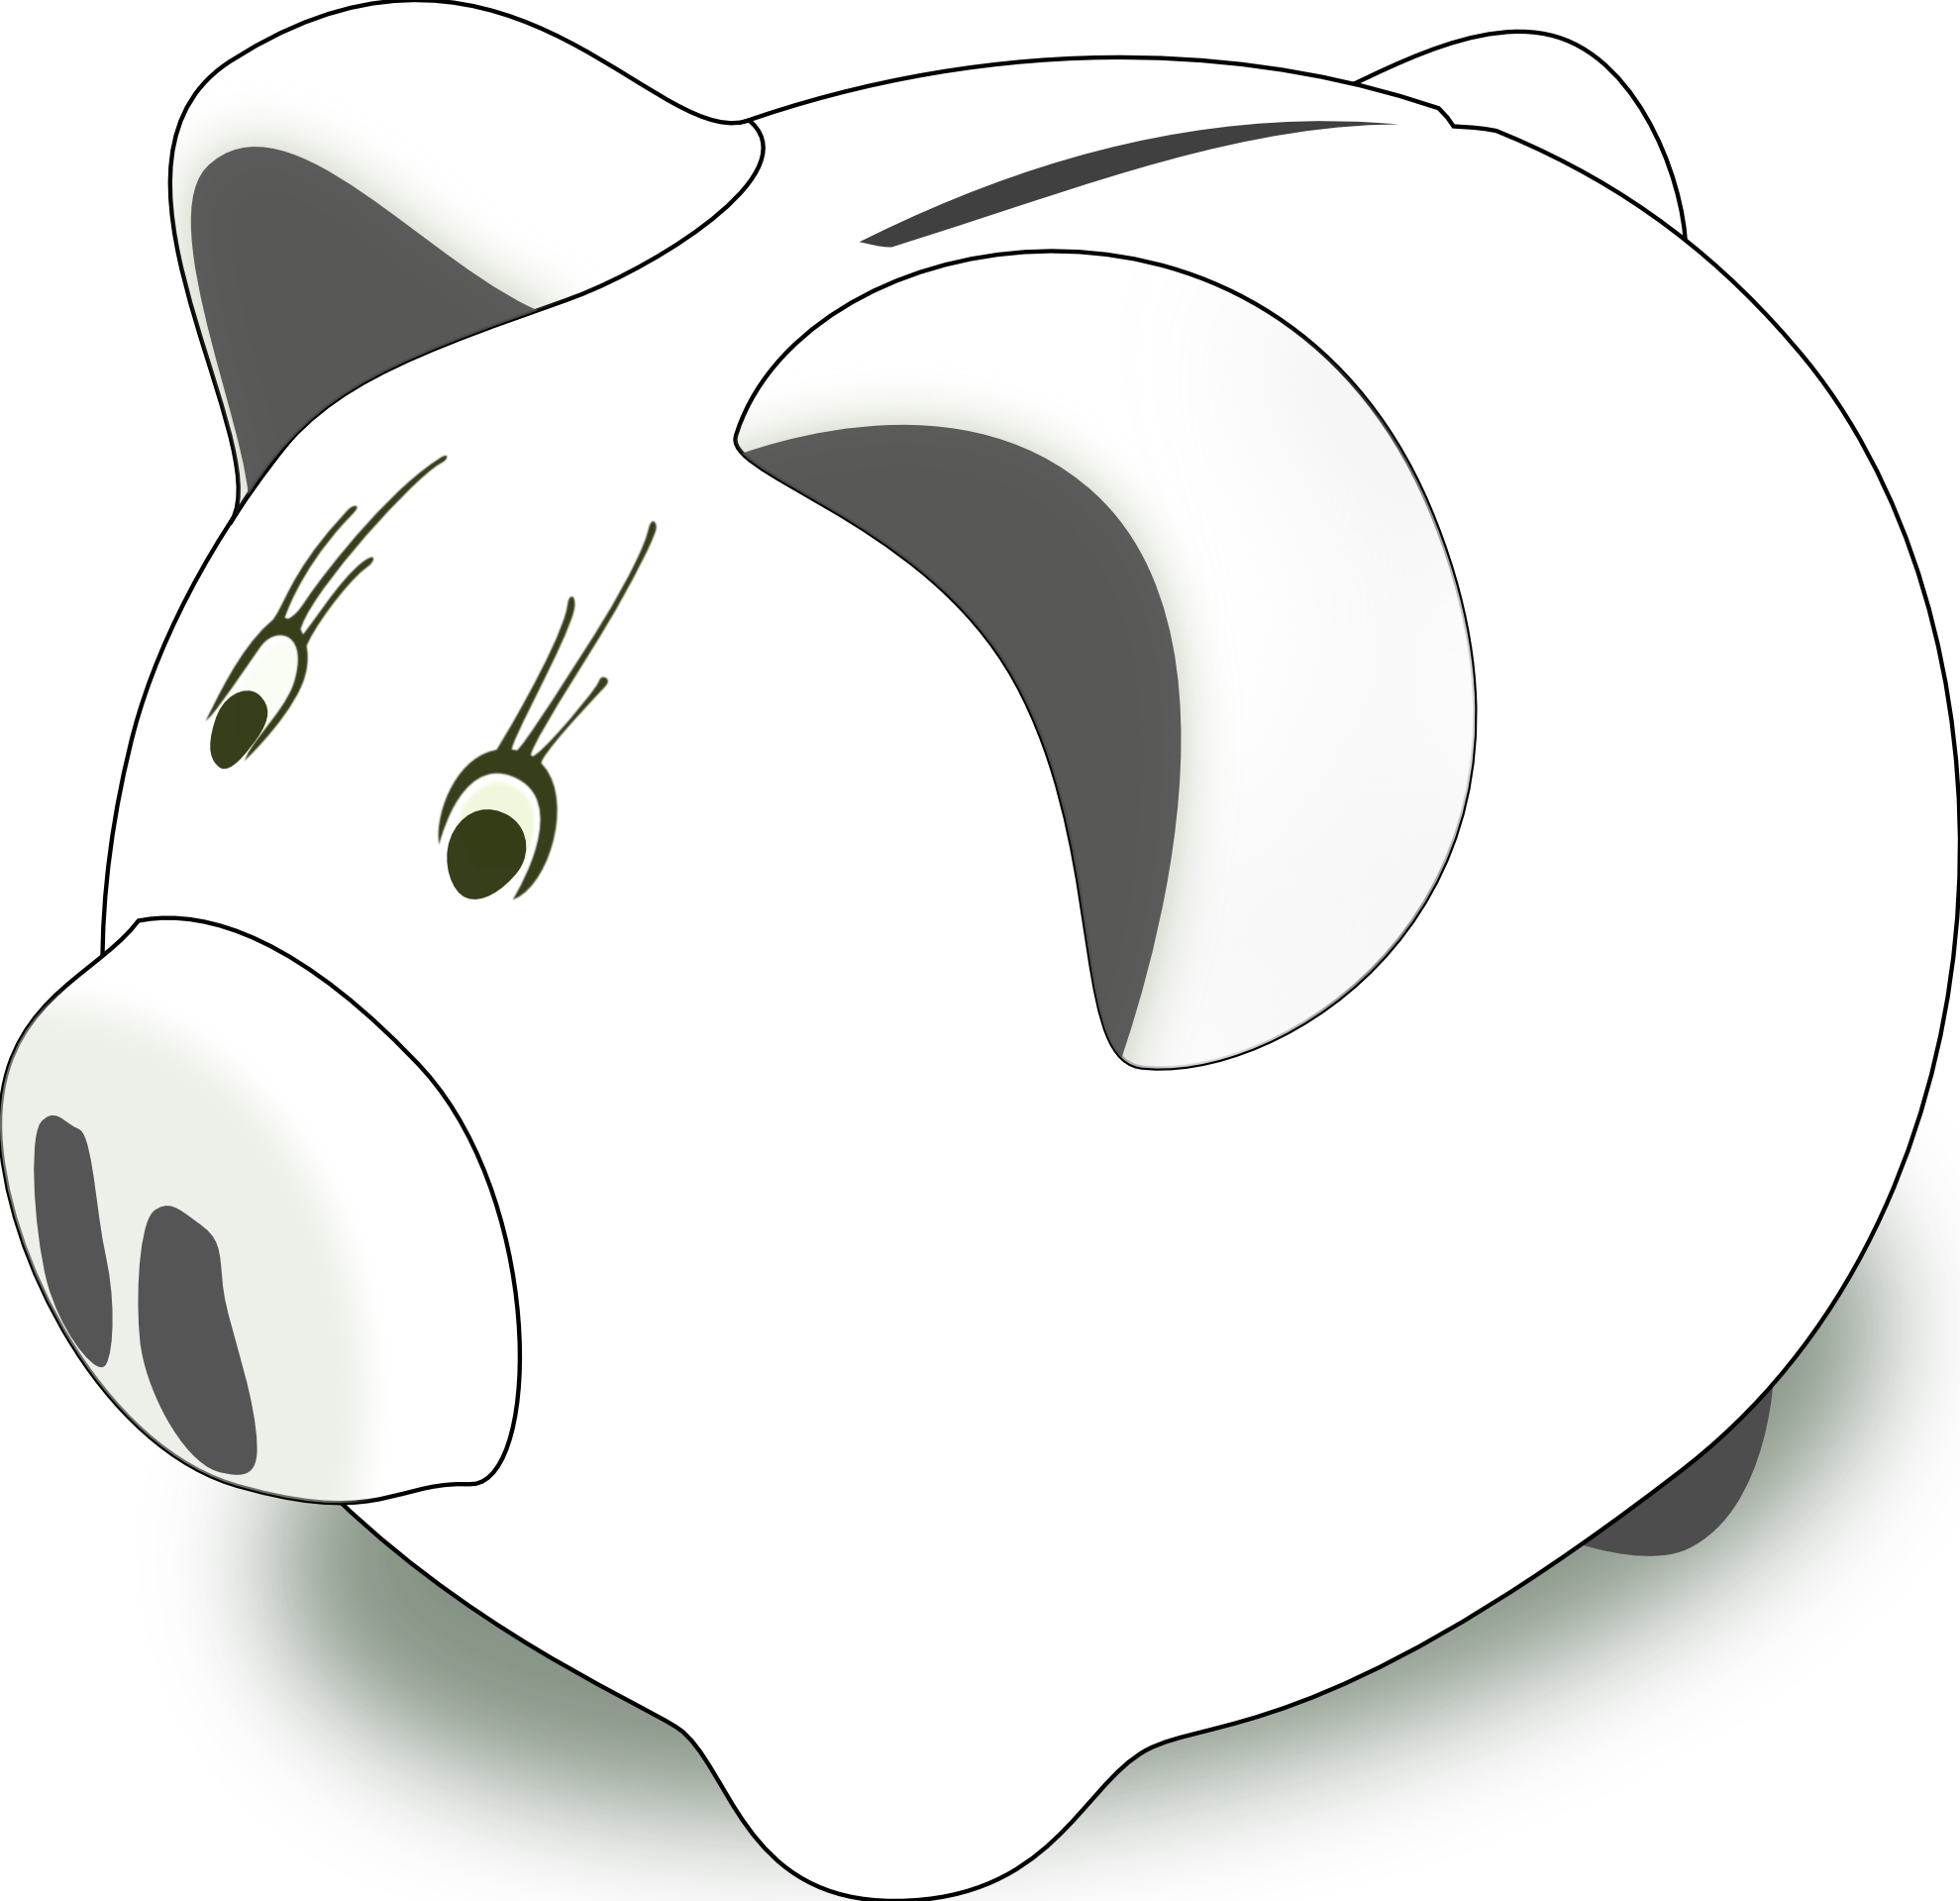 Piggy bank clipart kids clipart freeuse download Piggy Bank Clipart Black And White | Clipart Panda - Free Clipart Images clipart freeuse download